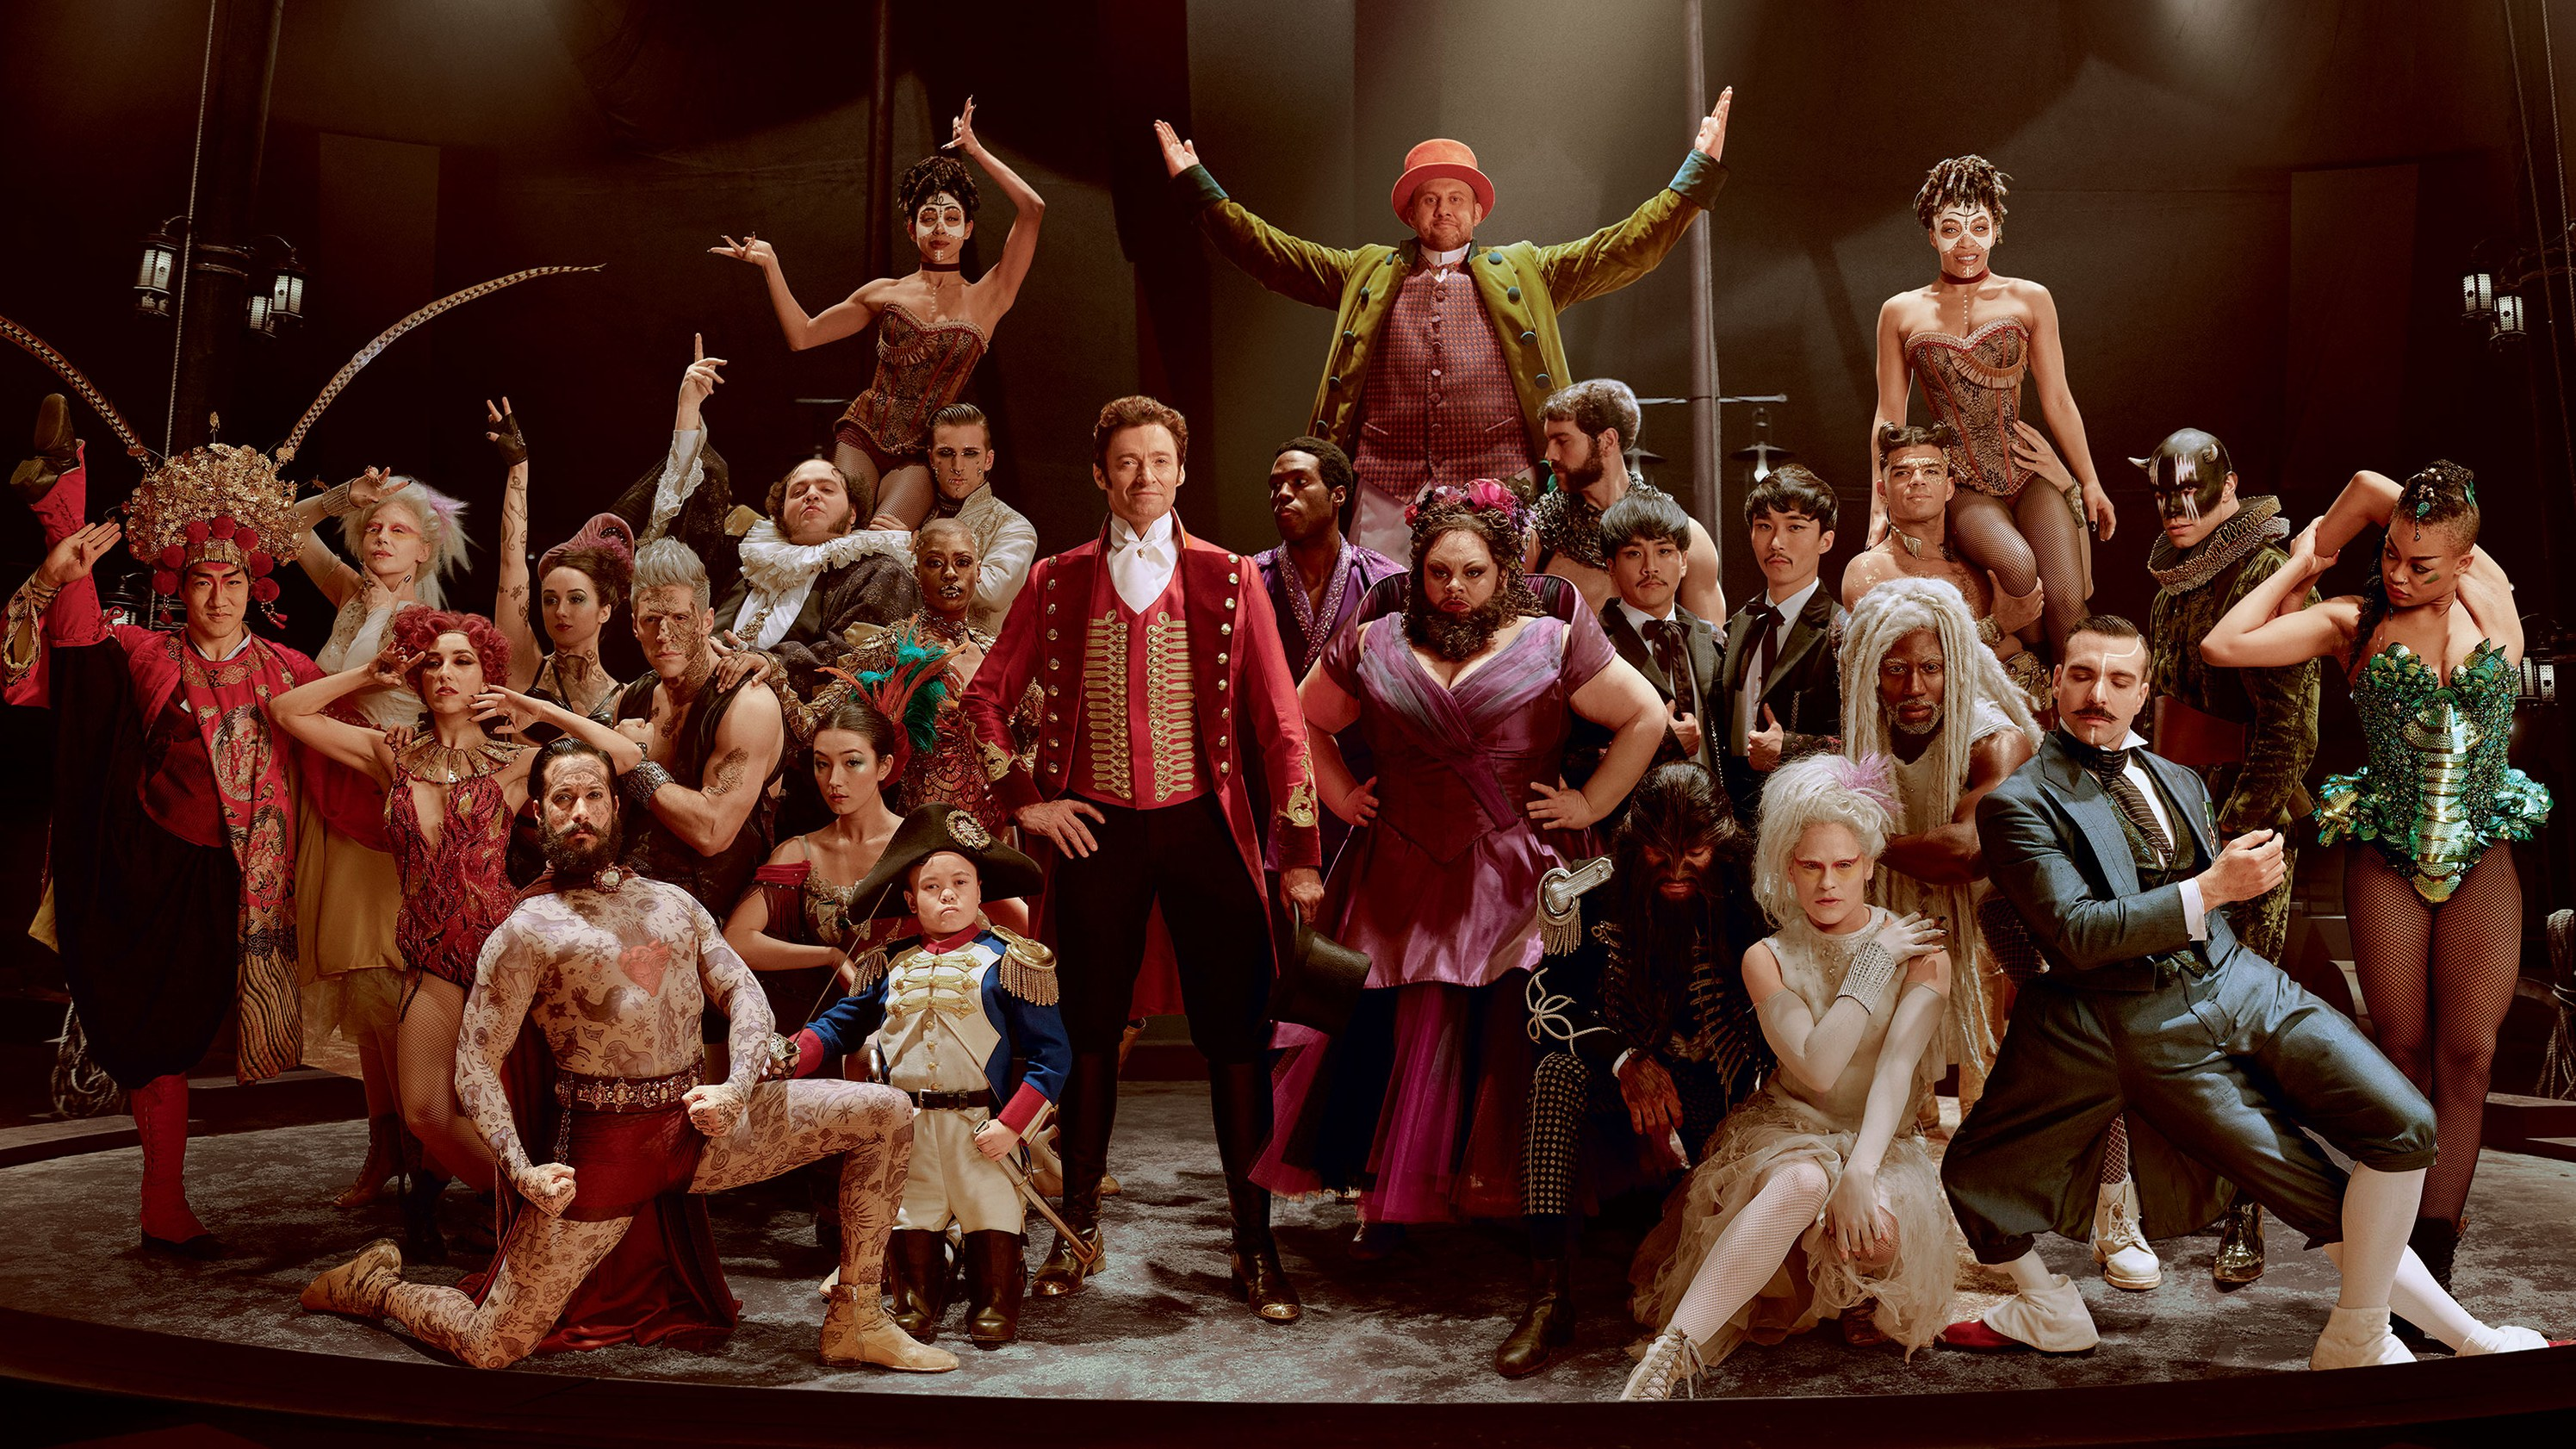 """The Greatest Showman"" Adalah Album Soundtrack #1 Inggris Terlama Semenjak ""Saturday Night Fever"""